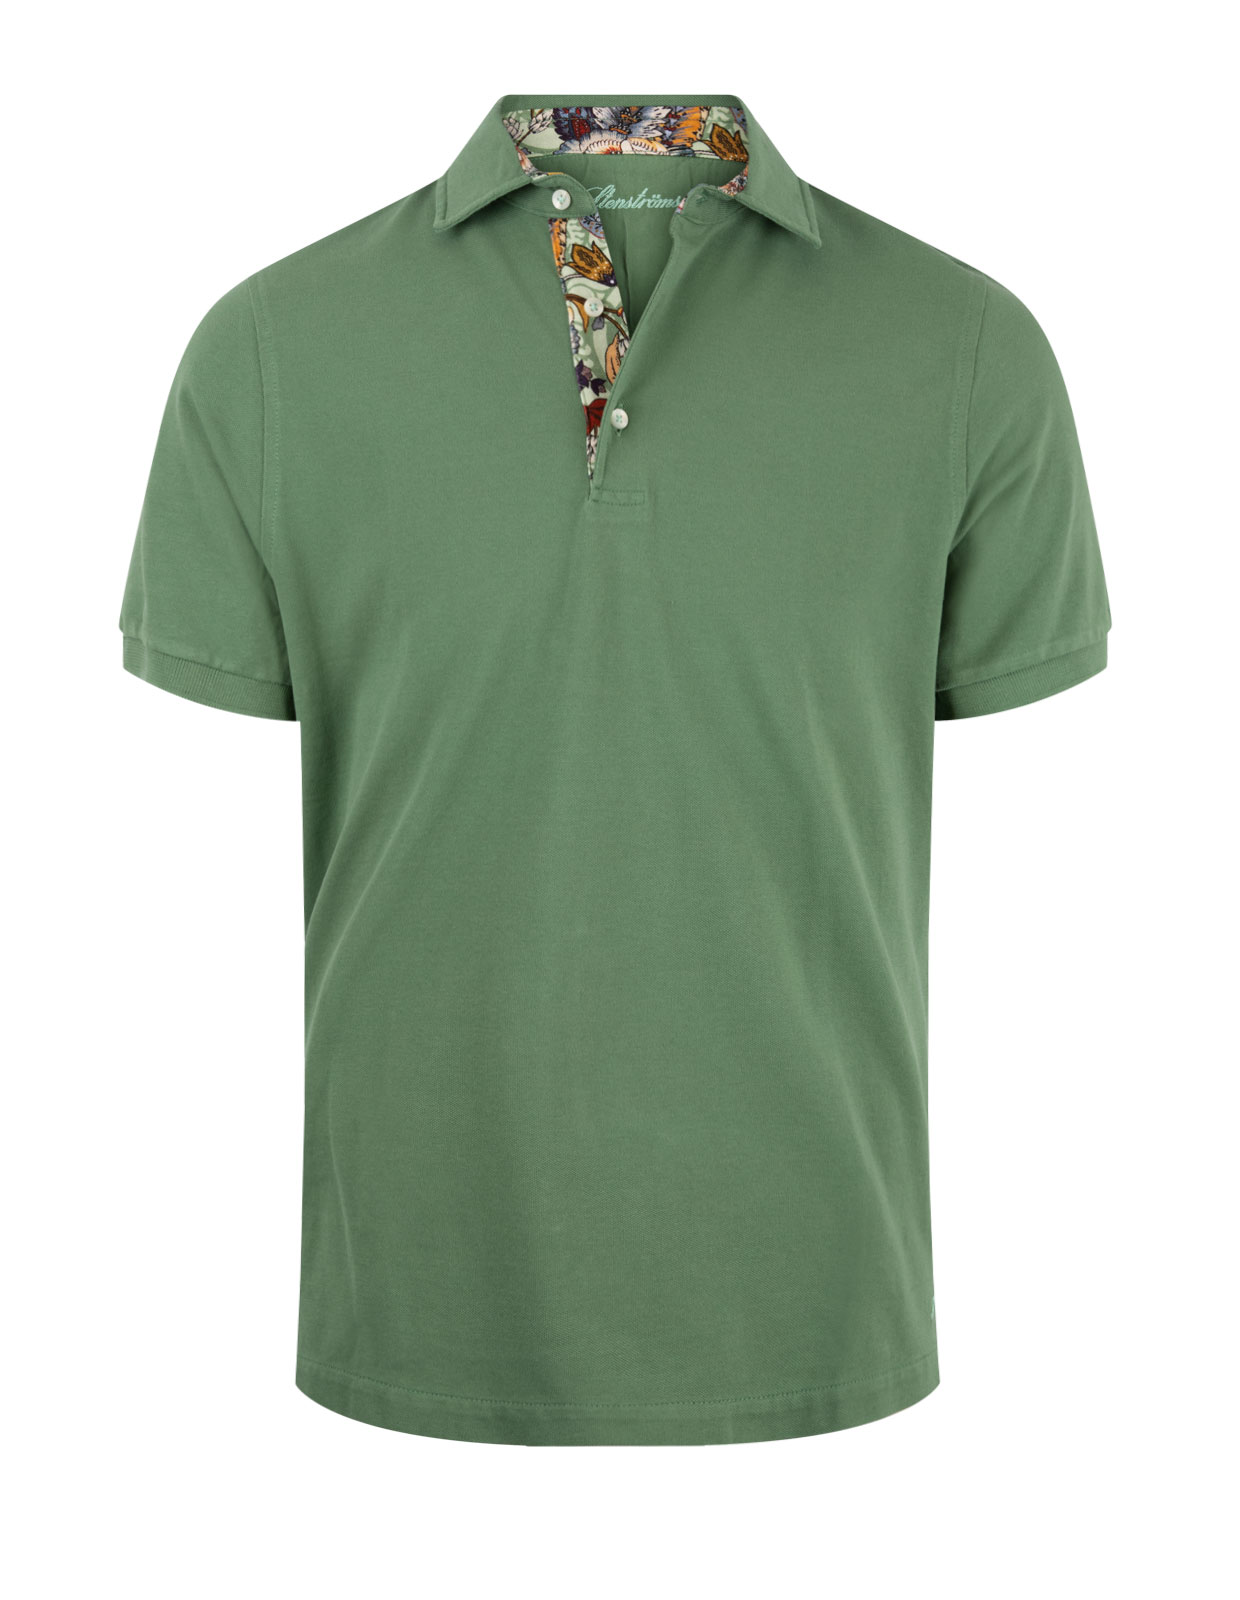 Polo Shirt Cotton Contrast Olive